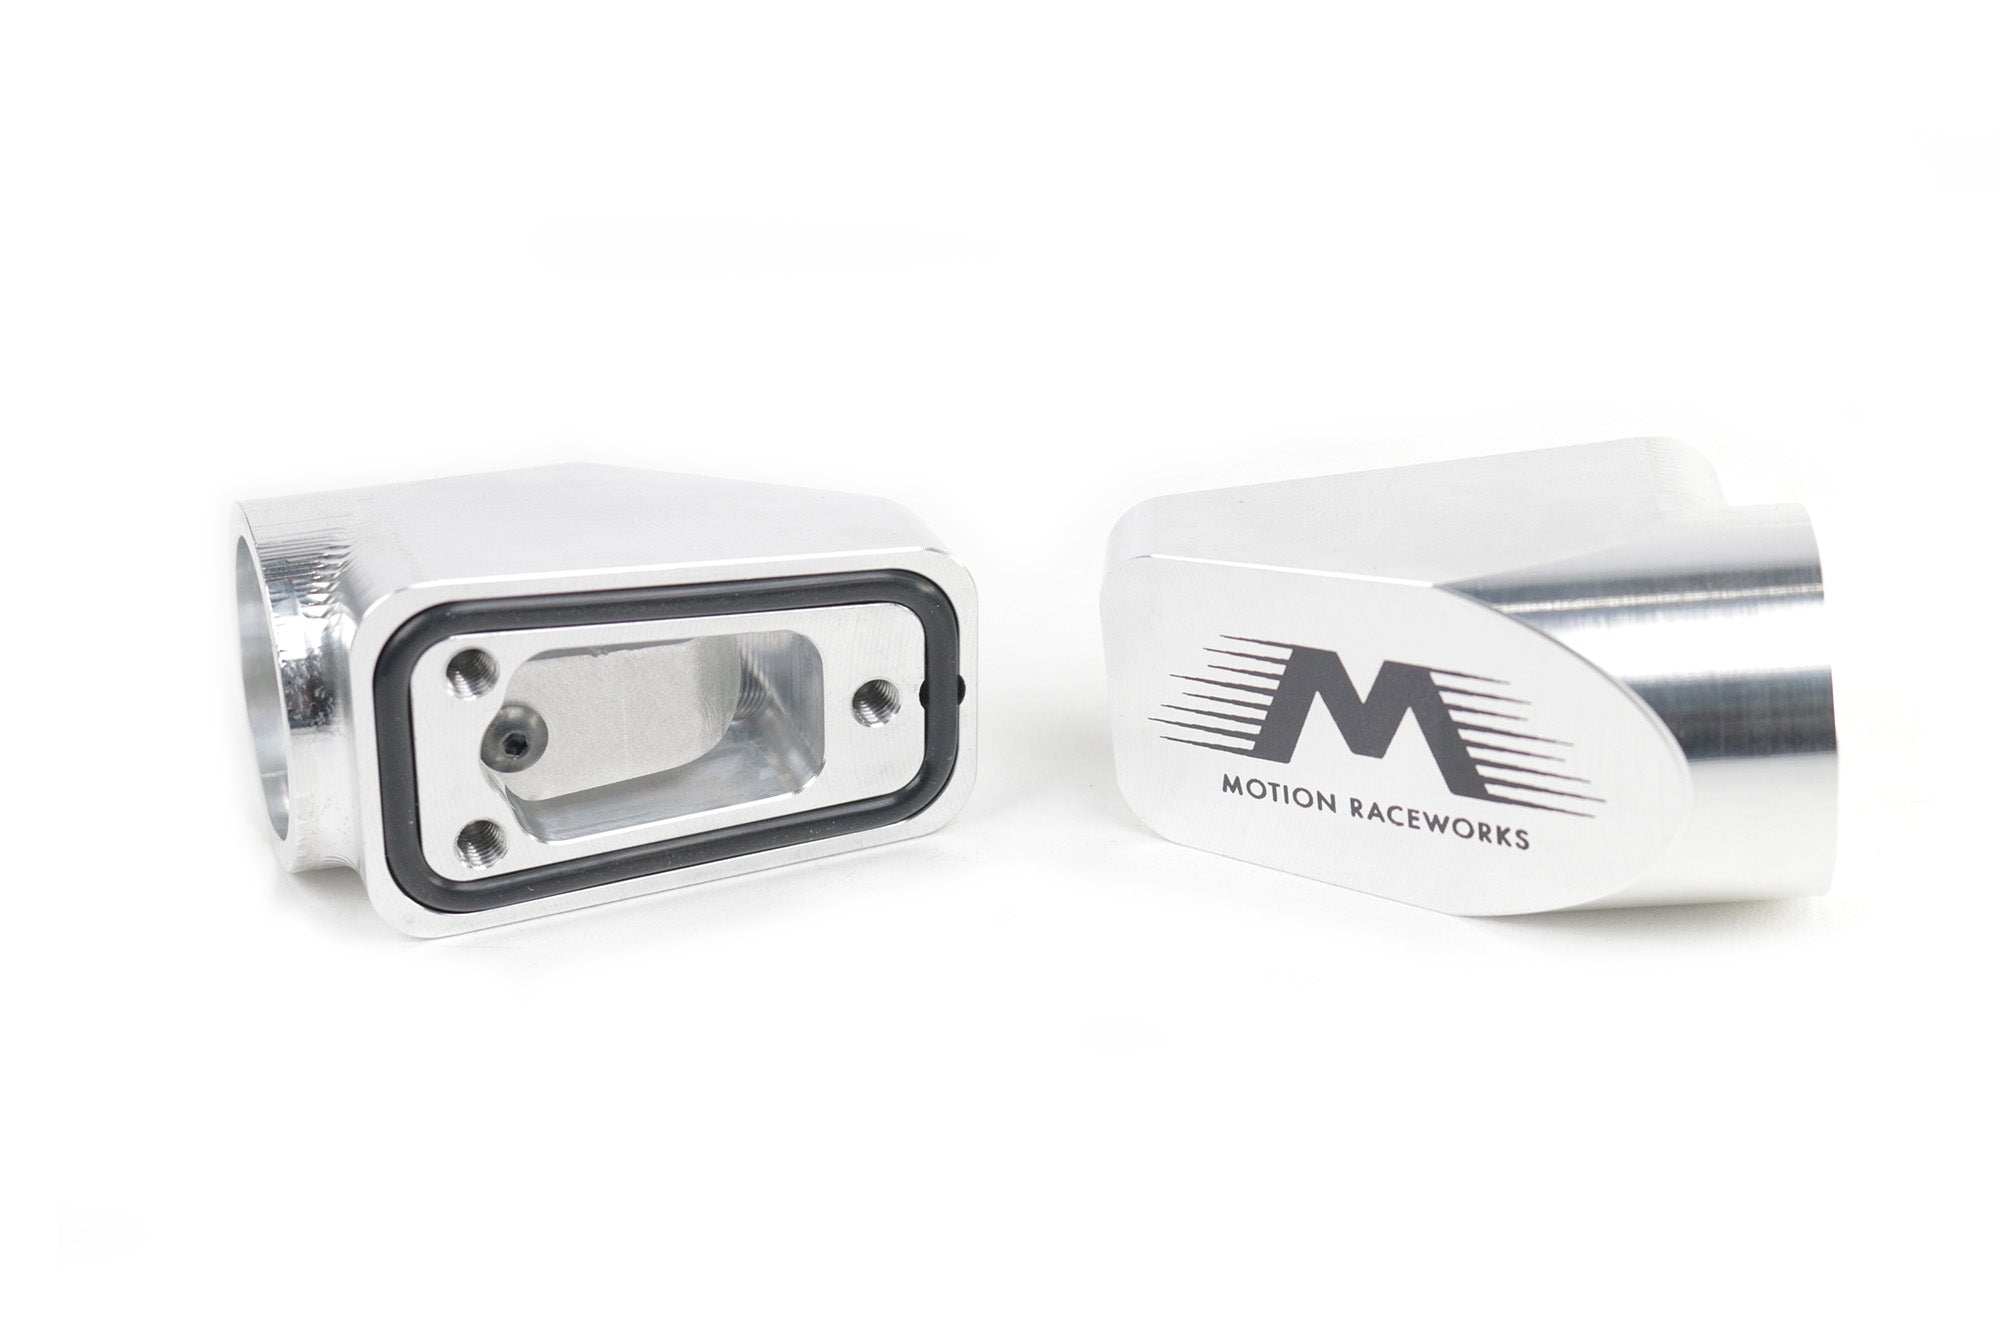 Motion Raceworks Billet Valve Cover Breathers Polished (Pair) 32-120-Motion Raceworks-Motion Raceworks